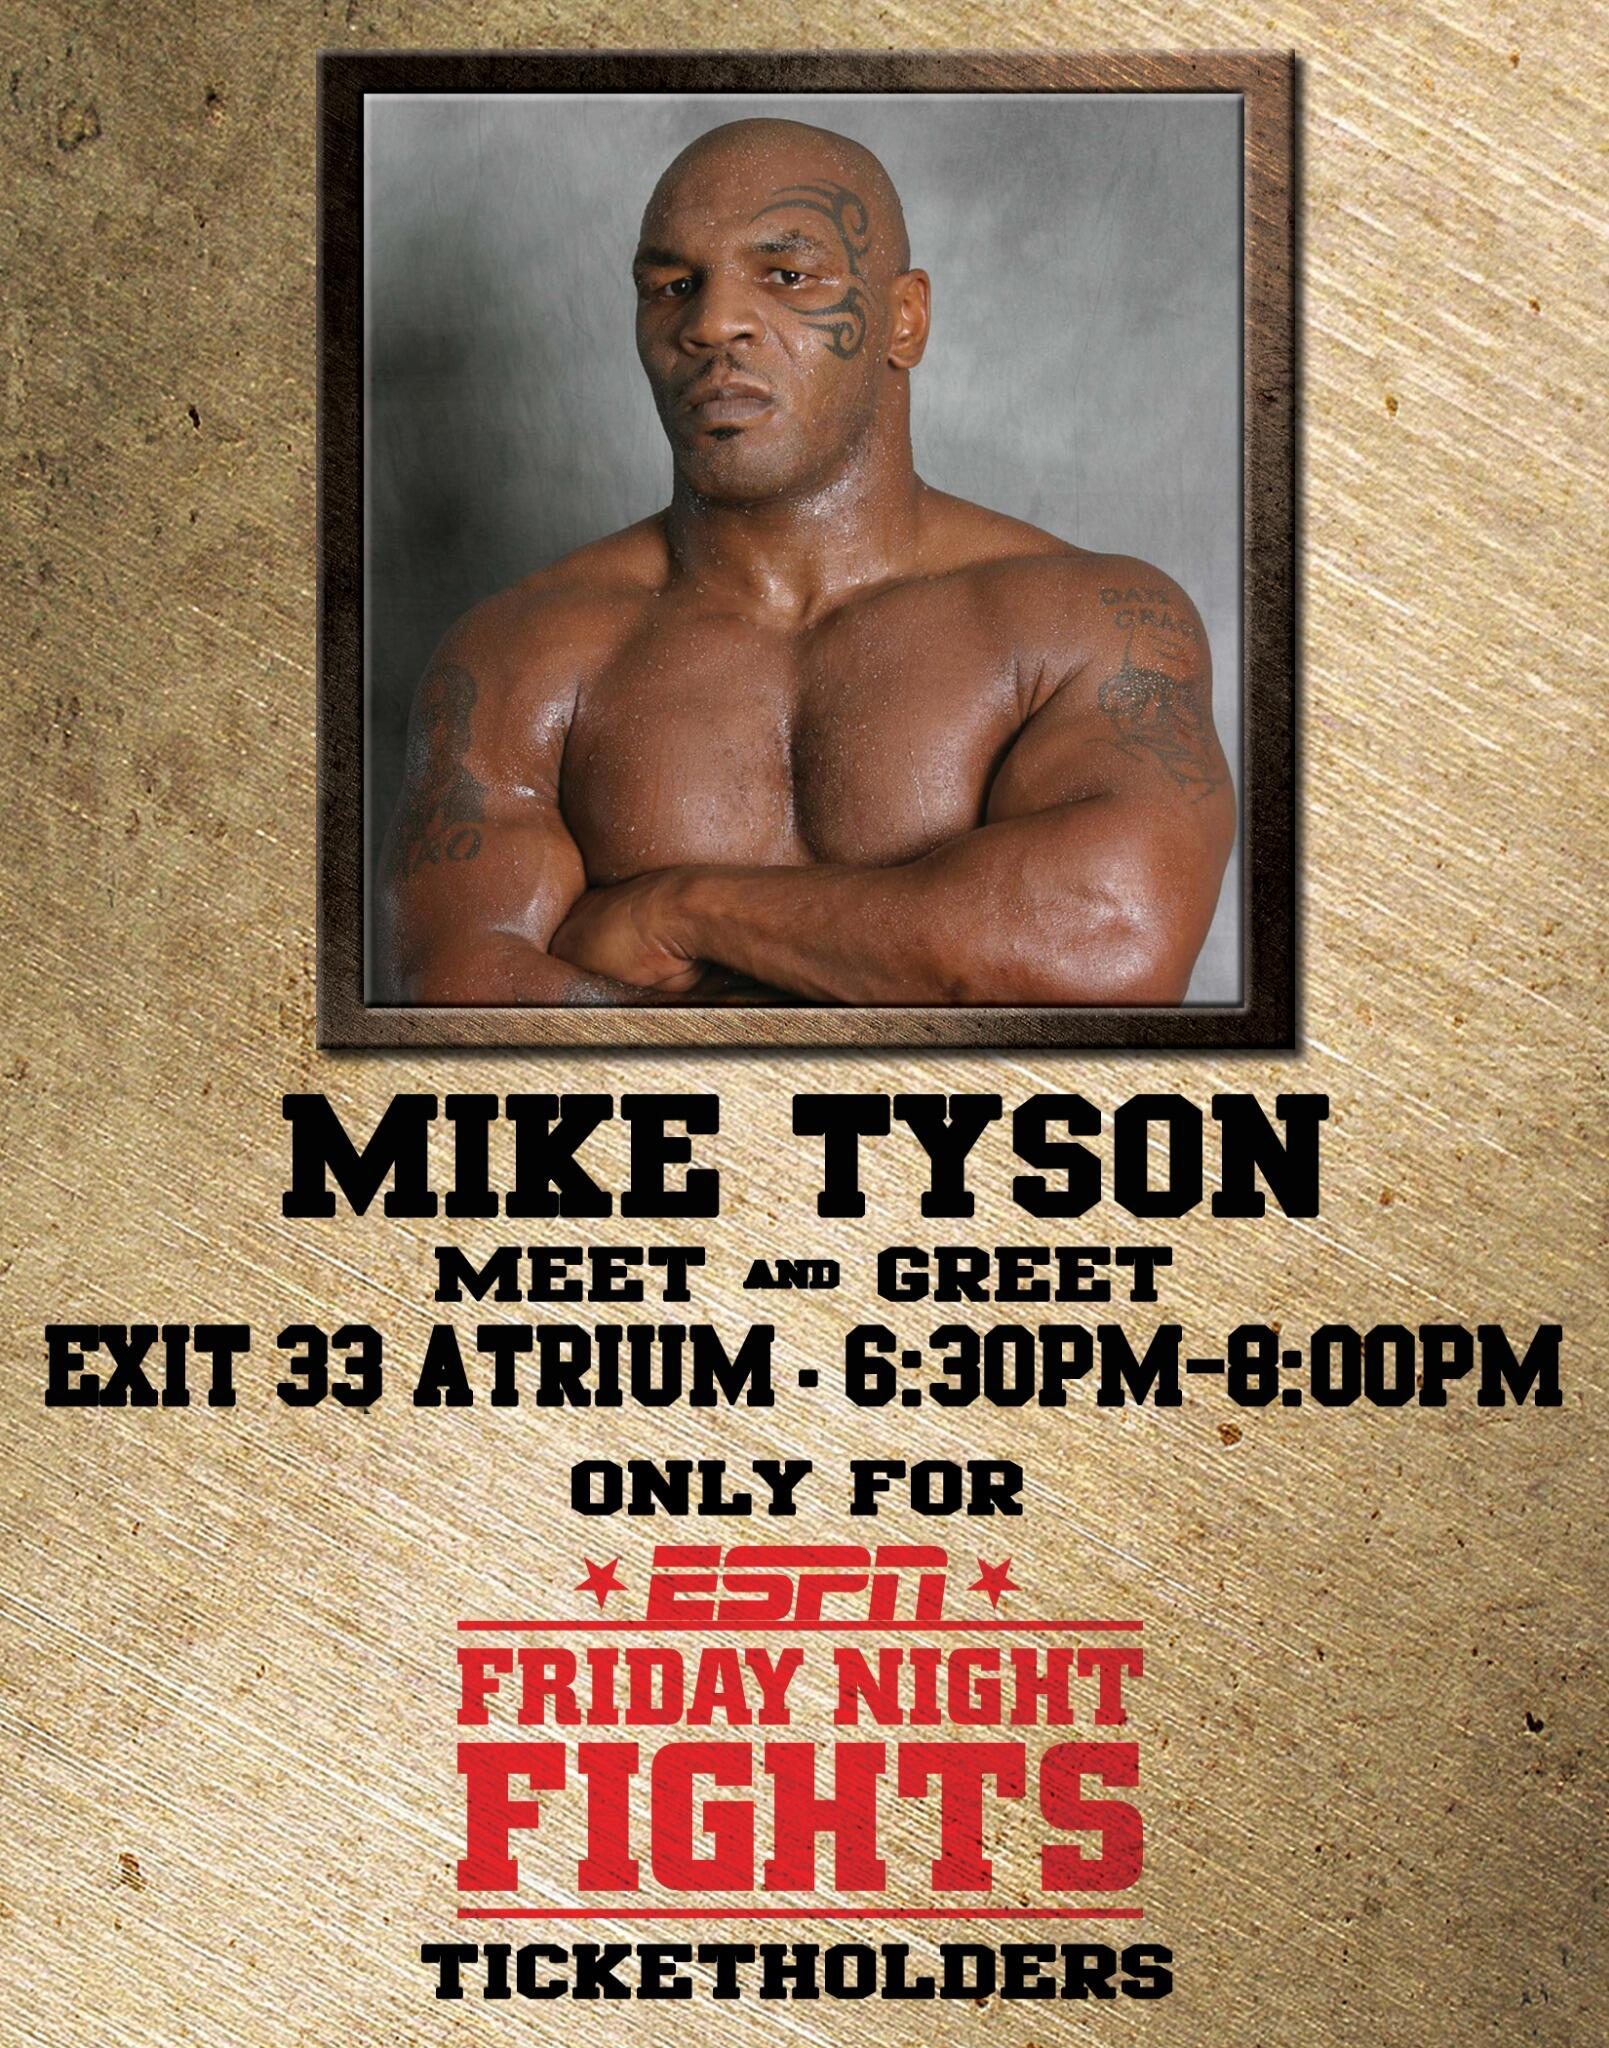 Mike Tyson On Twitter Meet Me Today Turningstone 822 6 8p For